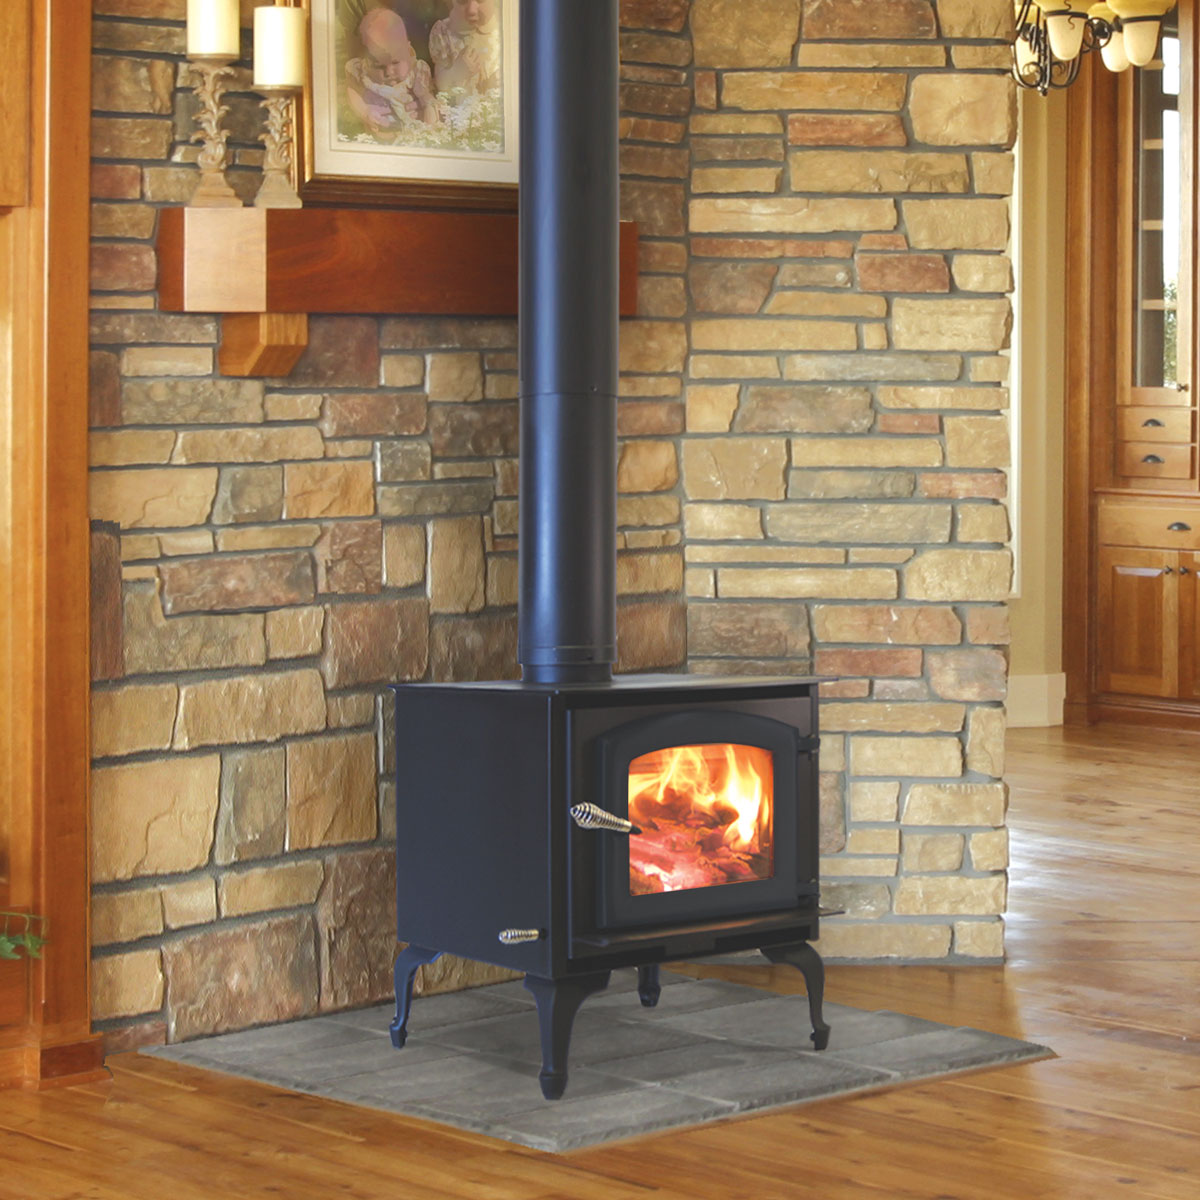 Kuma Aspen wood stove with cast legs and black door - Aspen Wood Stove And Freestanding Fireplace By Kuma Stoves